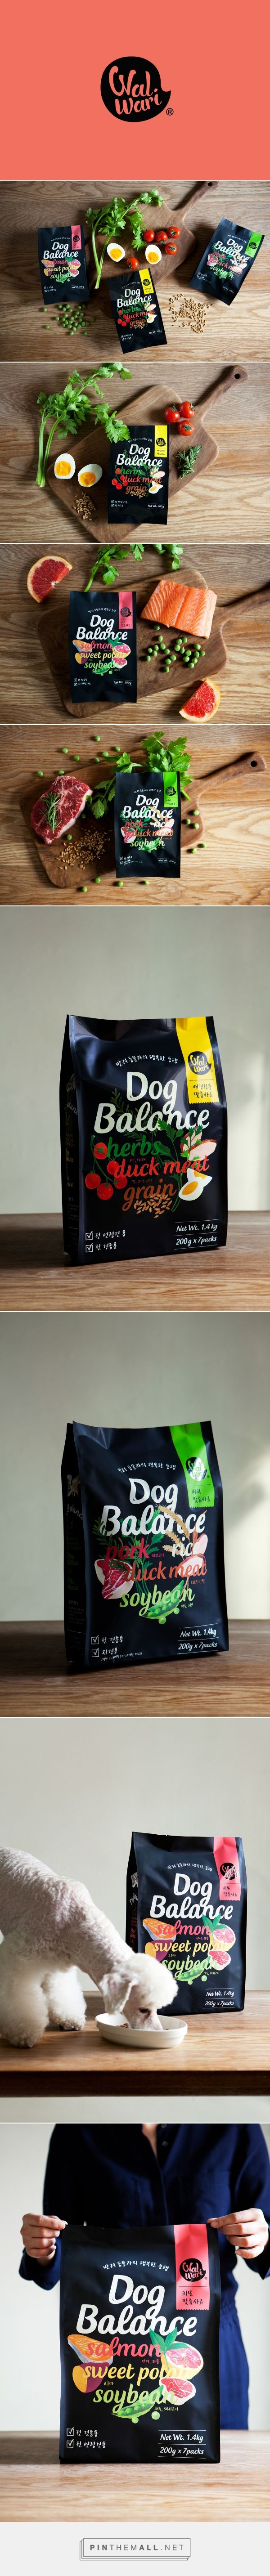 Dog Balance / pet food by Charry Jeon, Saerom Kang, ContentFormContext, KIWOONG HONG